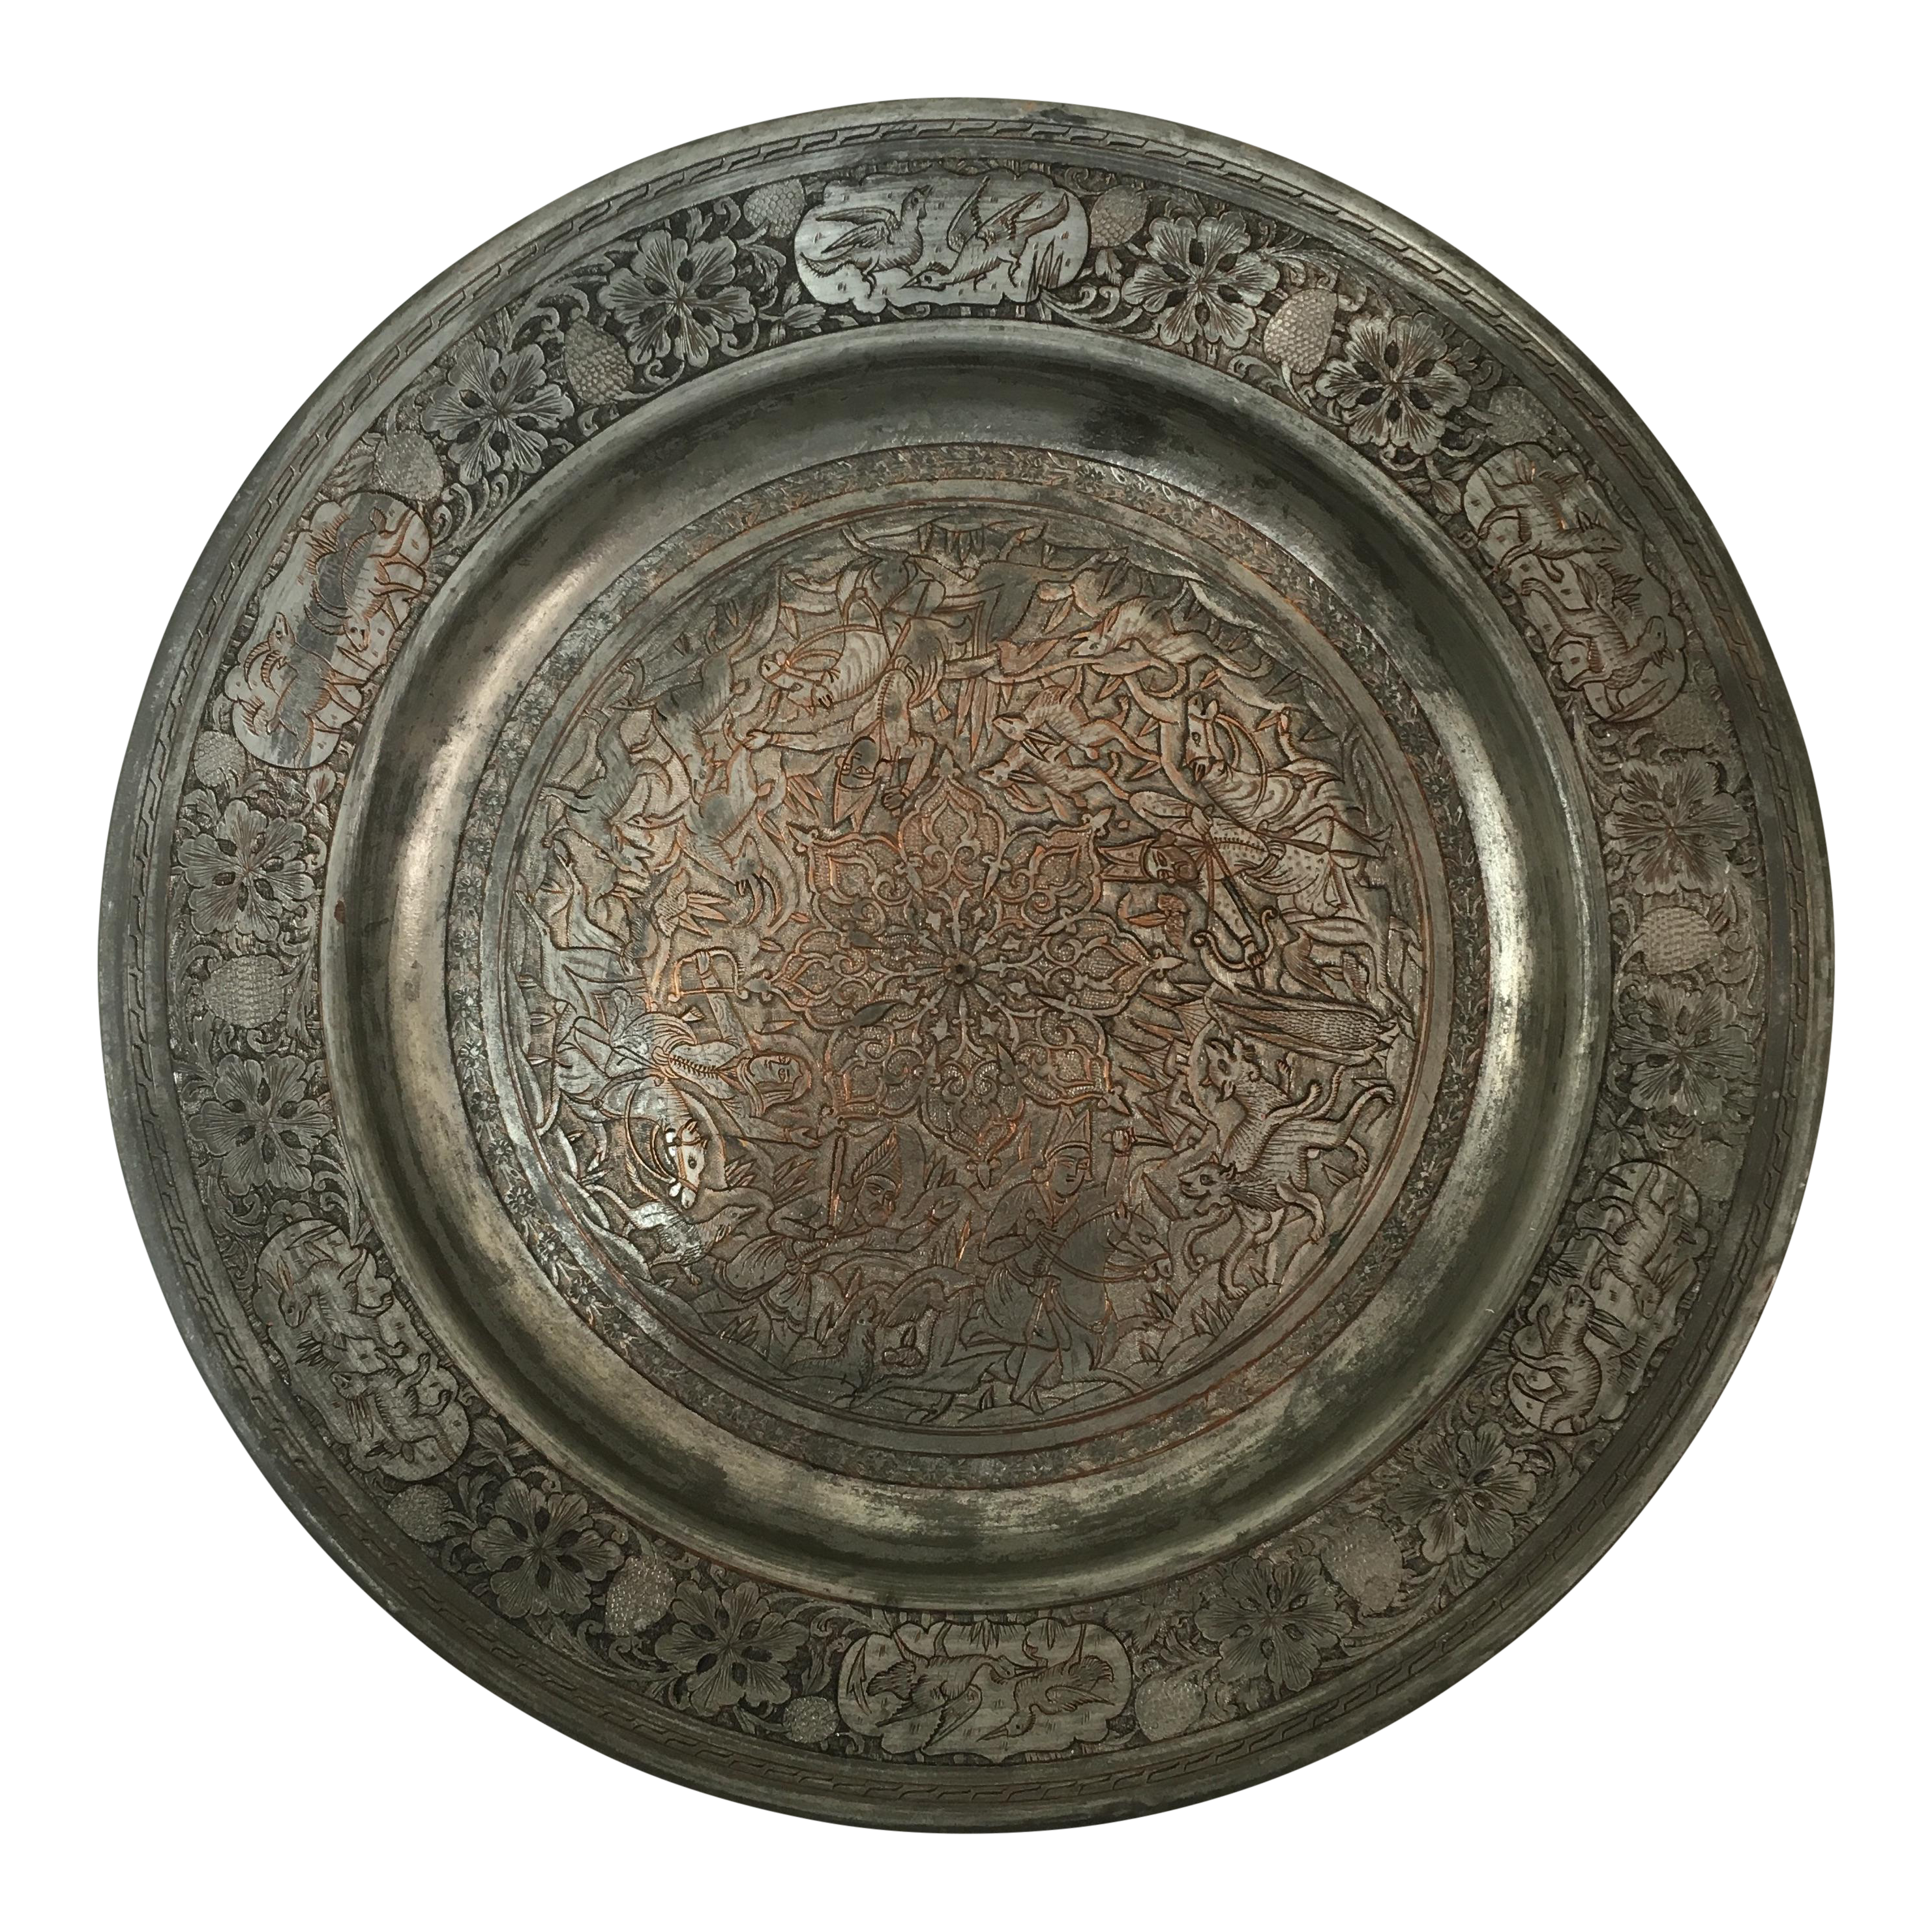 Antique Persian Etched Tinned Copper Plate  sc 1 st  Chairish & Vintage \u0026 Used Persian Decorative Plates   Chairish